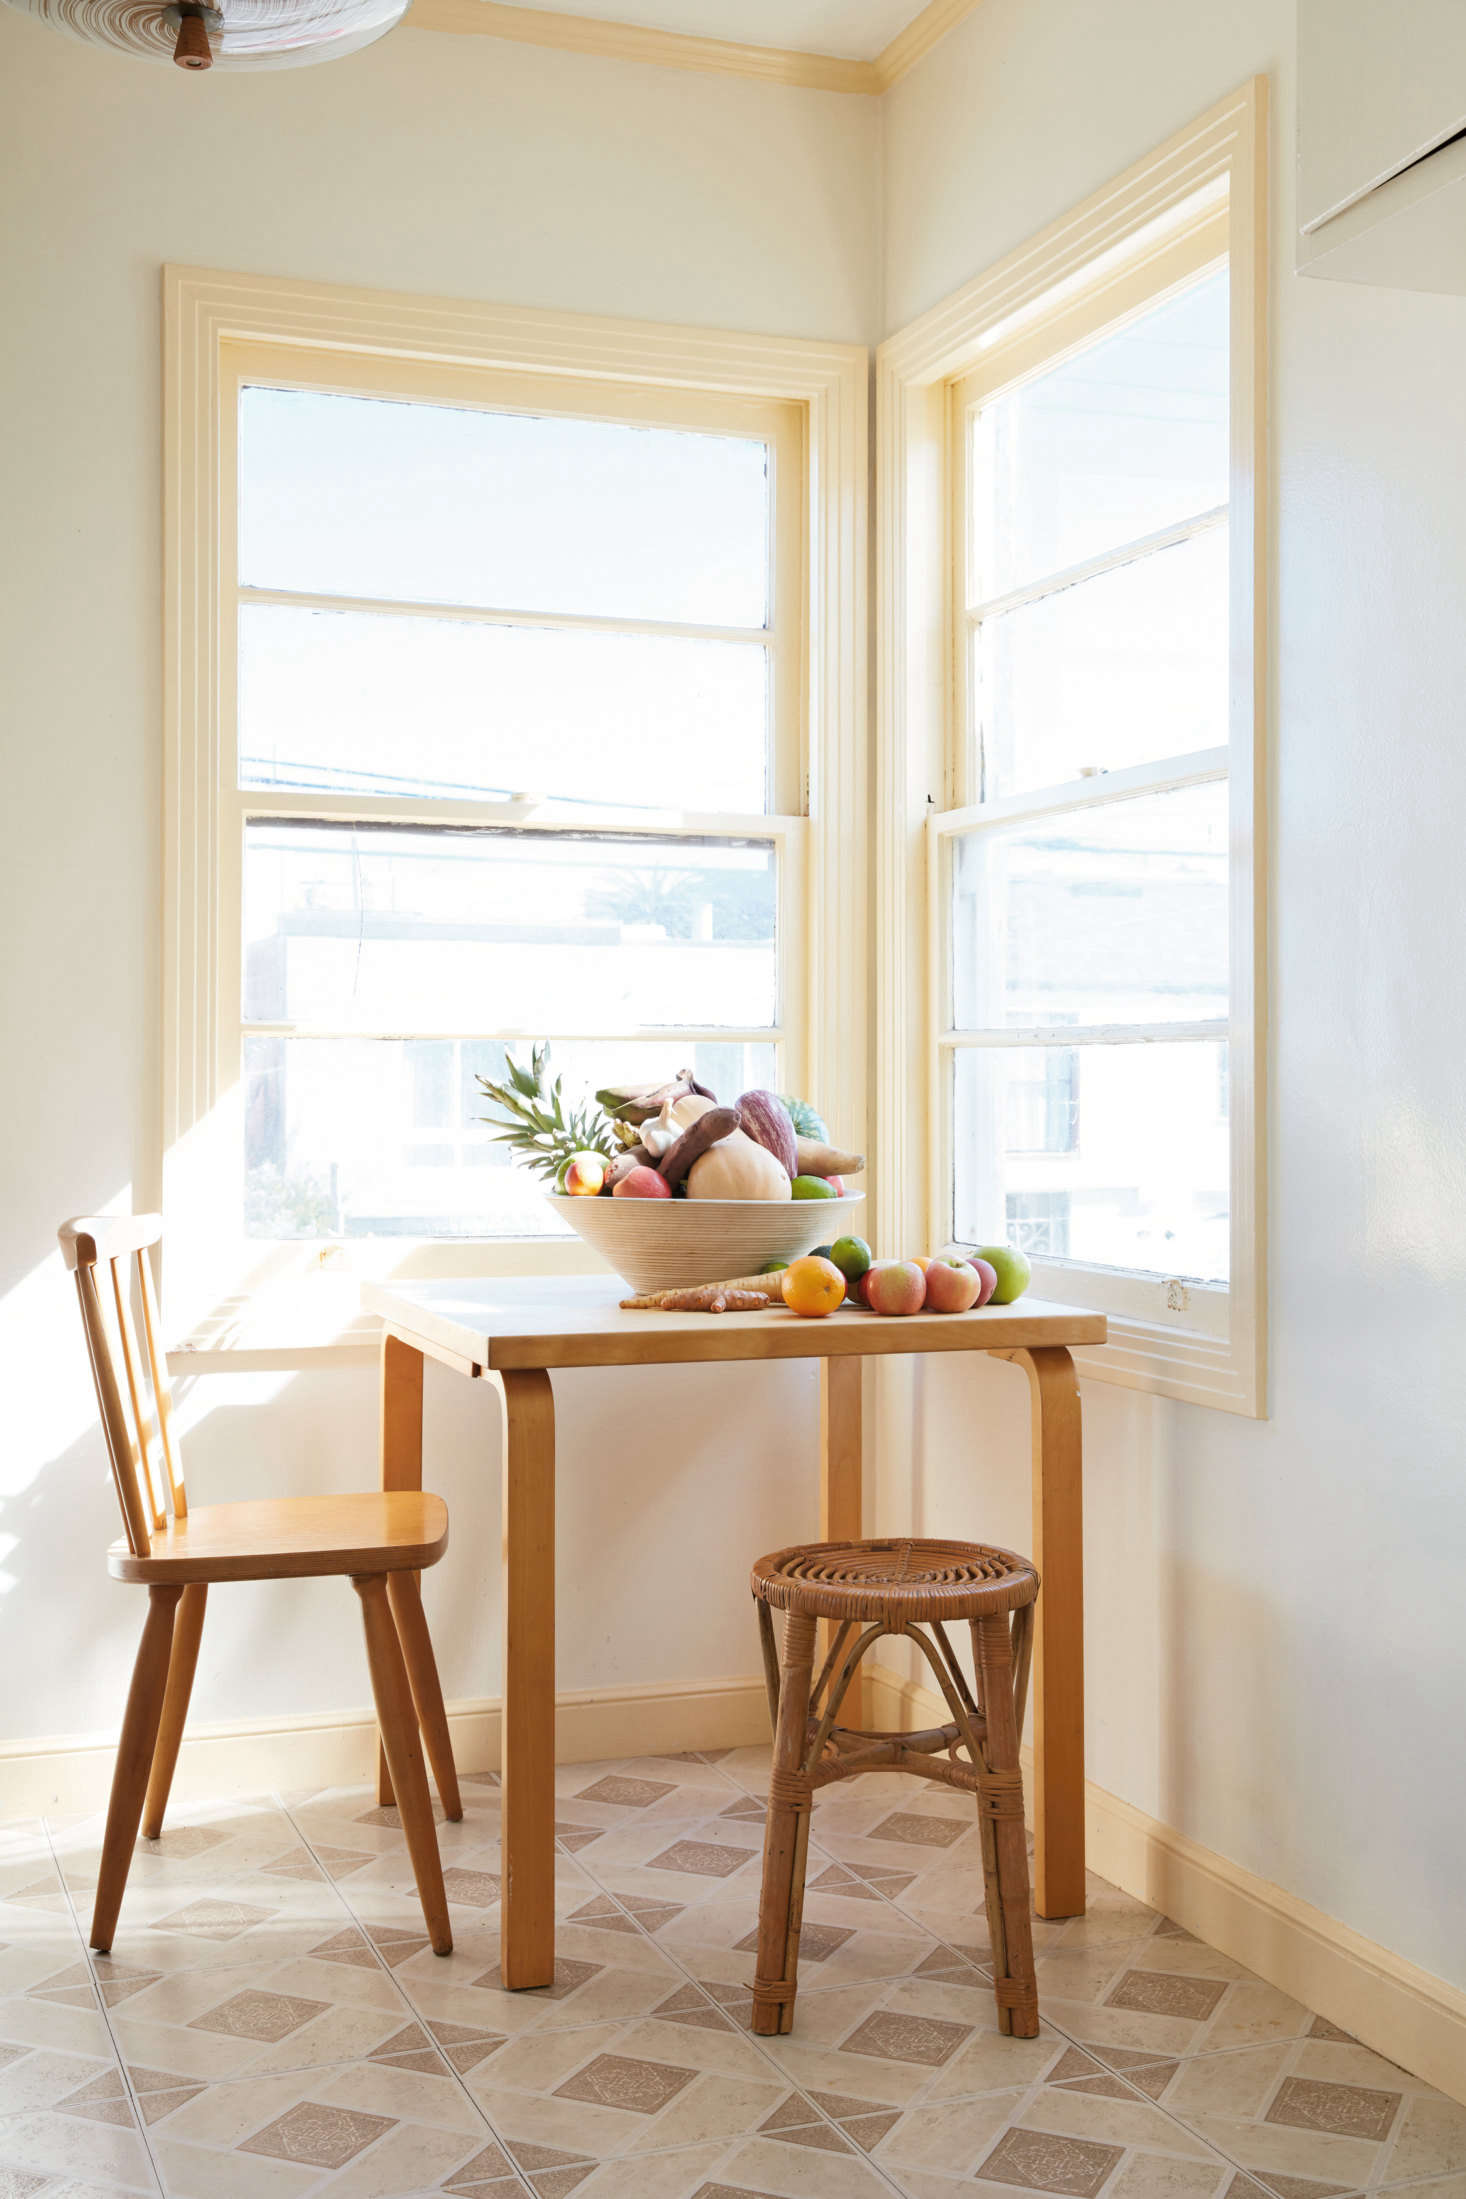 """A breakfast nook in the couple's Great Highway apartment exemplifies what they call """"the mix"""": furniture and fittings that """"represent a sort of map of our lives and our tastes,"""" all tied together by a neutral palette and natural materials. Here, an Alvar Aalto table mixes with a rattan stool, a flea market find."""